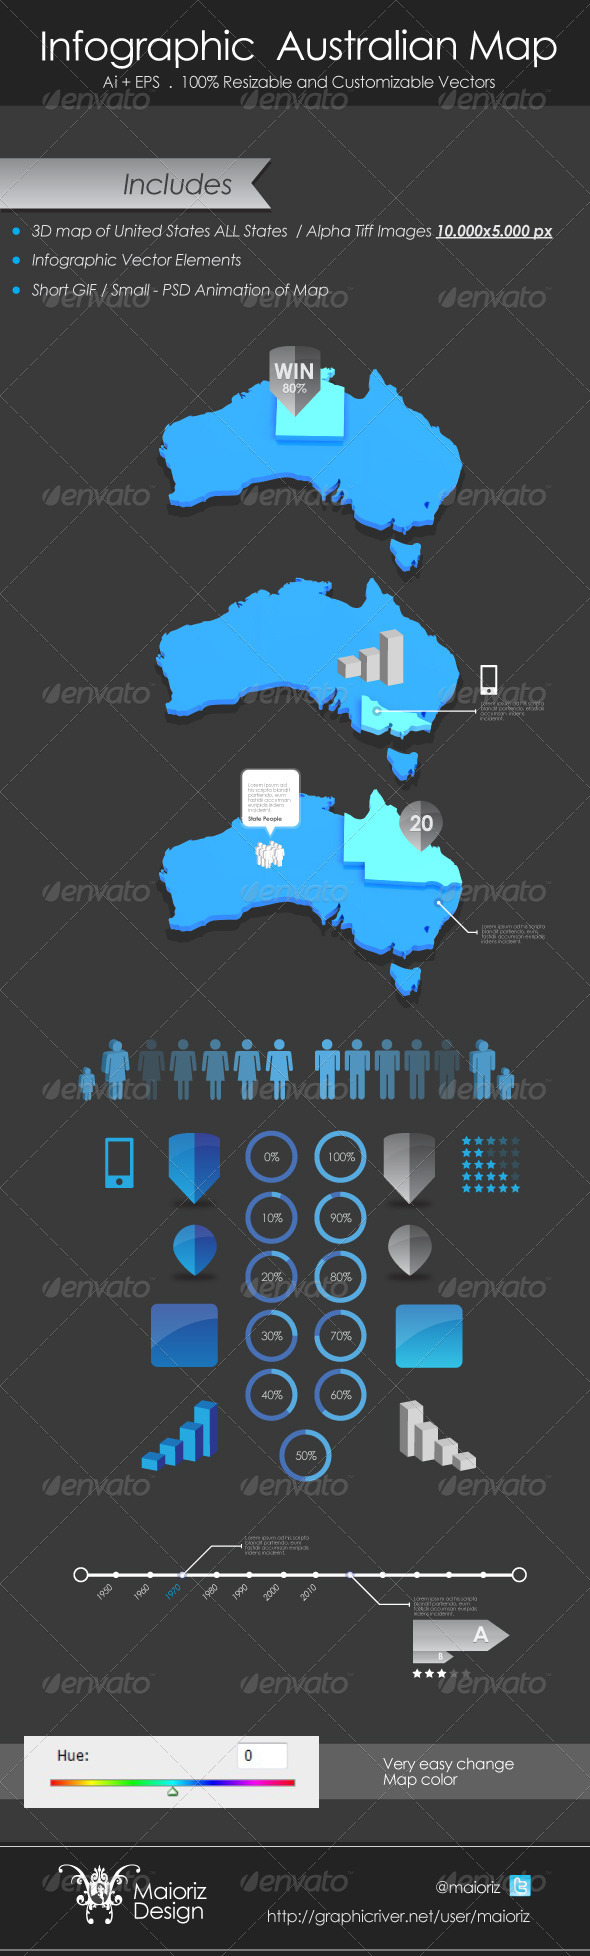 GraphicRiver Infographic Australian Map 3762840